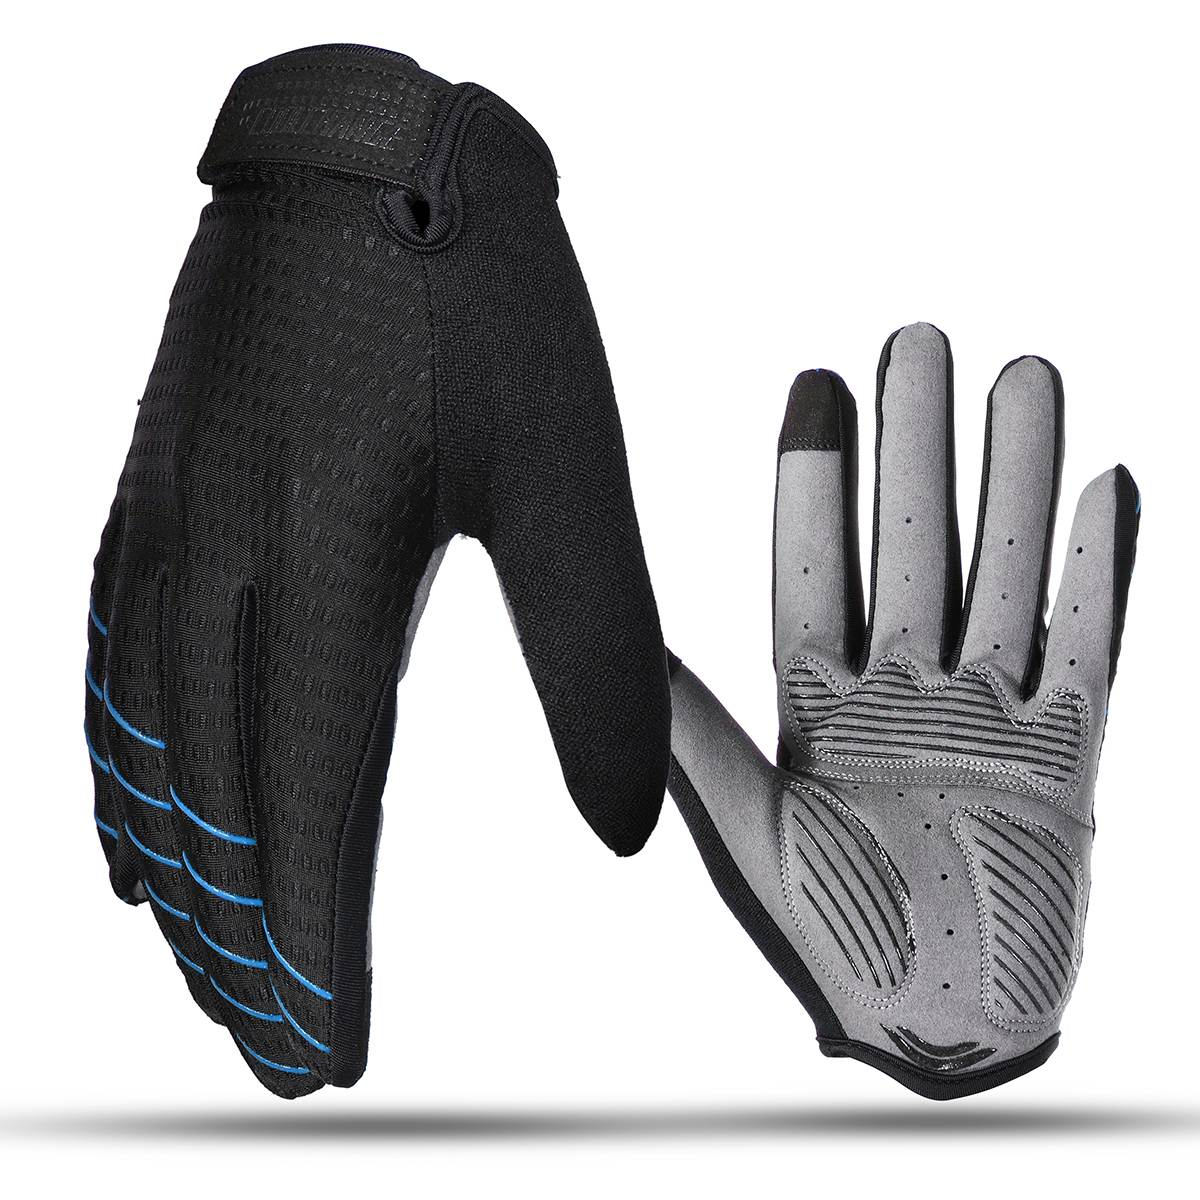 Black Blue Red Winter Warm Cycling Gloves Touch Screen Racing Motorcycle Bike Women Men for skiing outdoor design